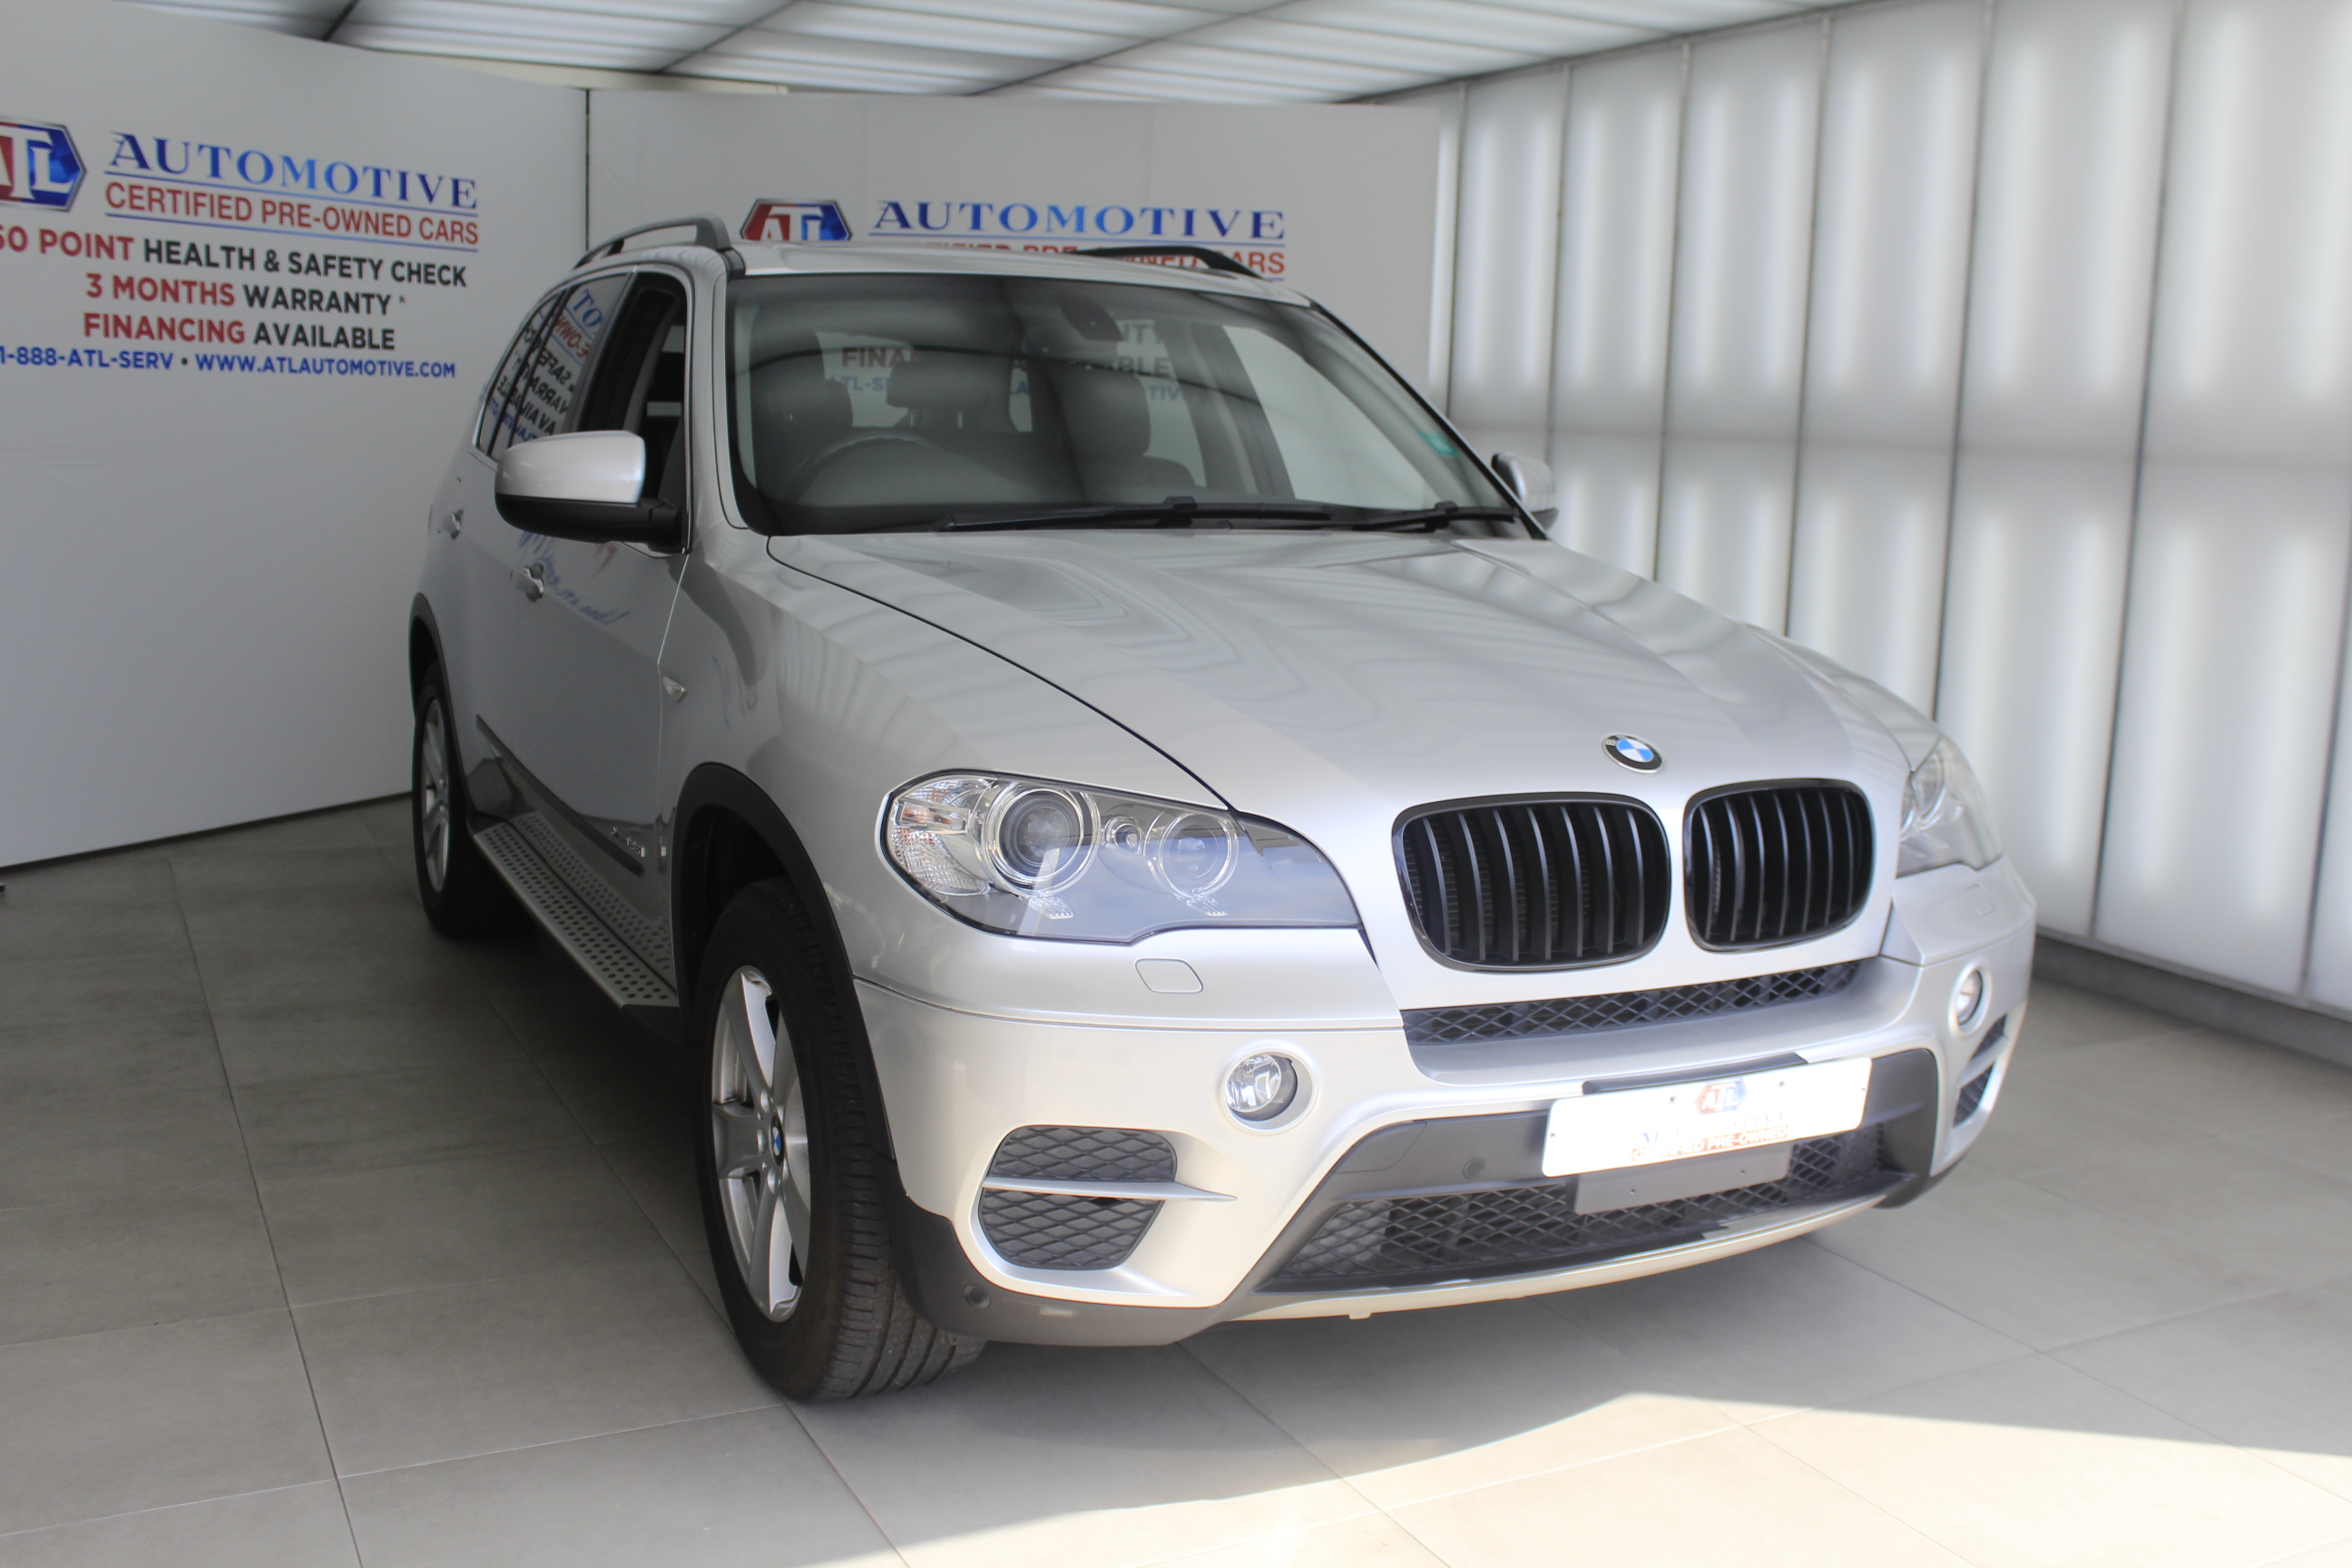 2012 used bmw x5 suv for sale in jamaica call for price yardrive vehicle id yd9012820e4. Black Bedroom Furniture Sets. Home Design Ideas